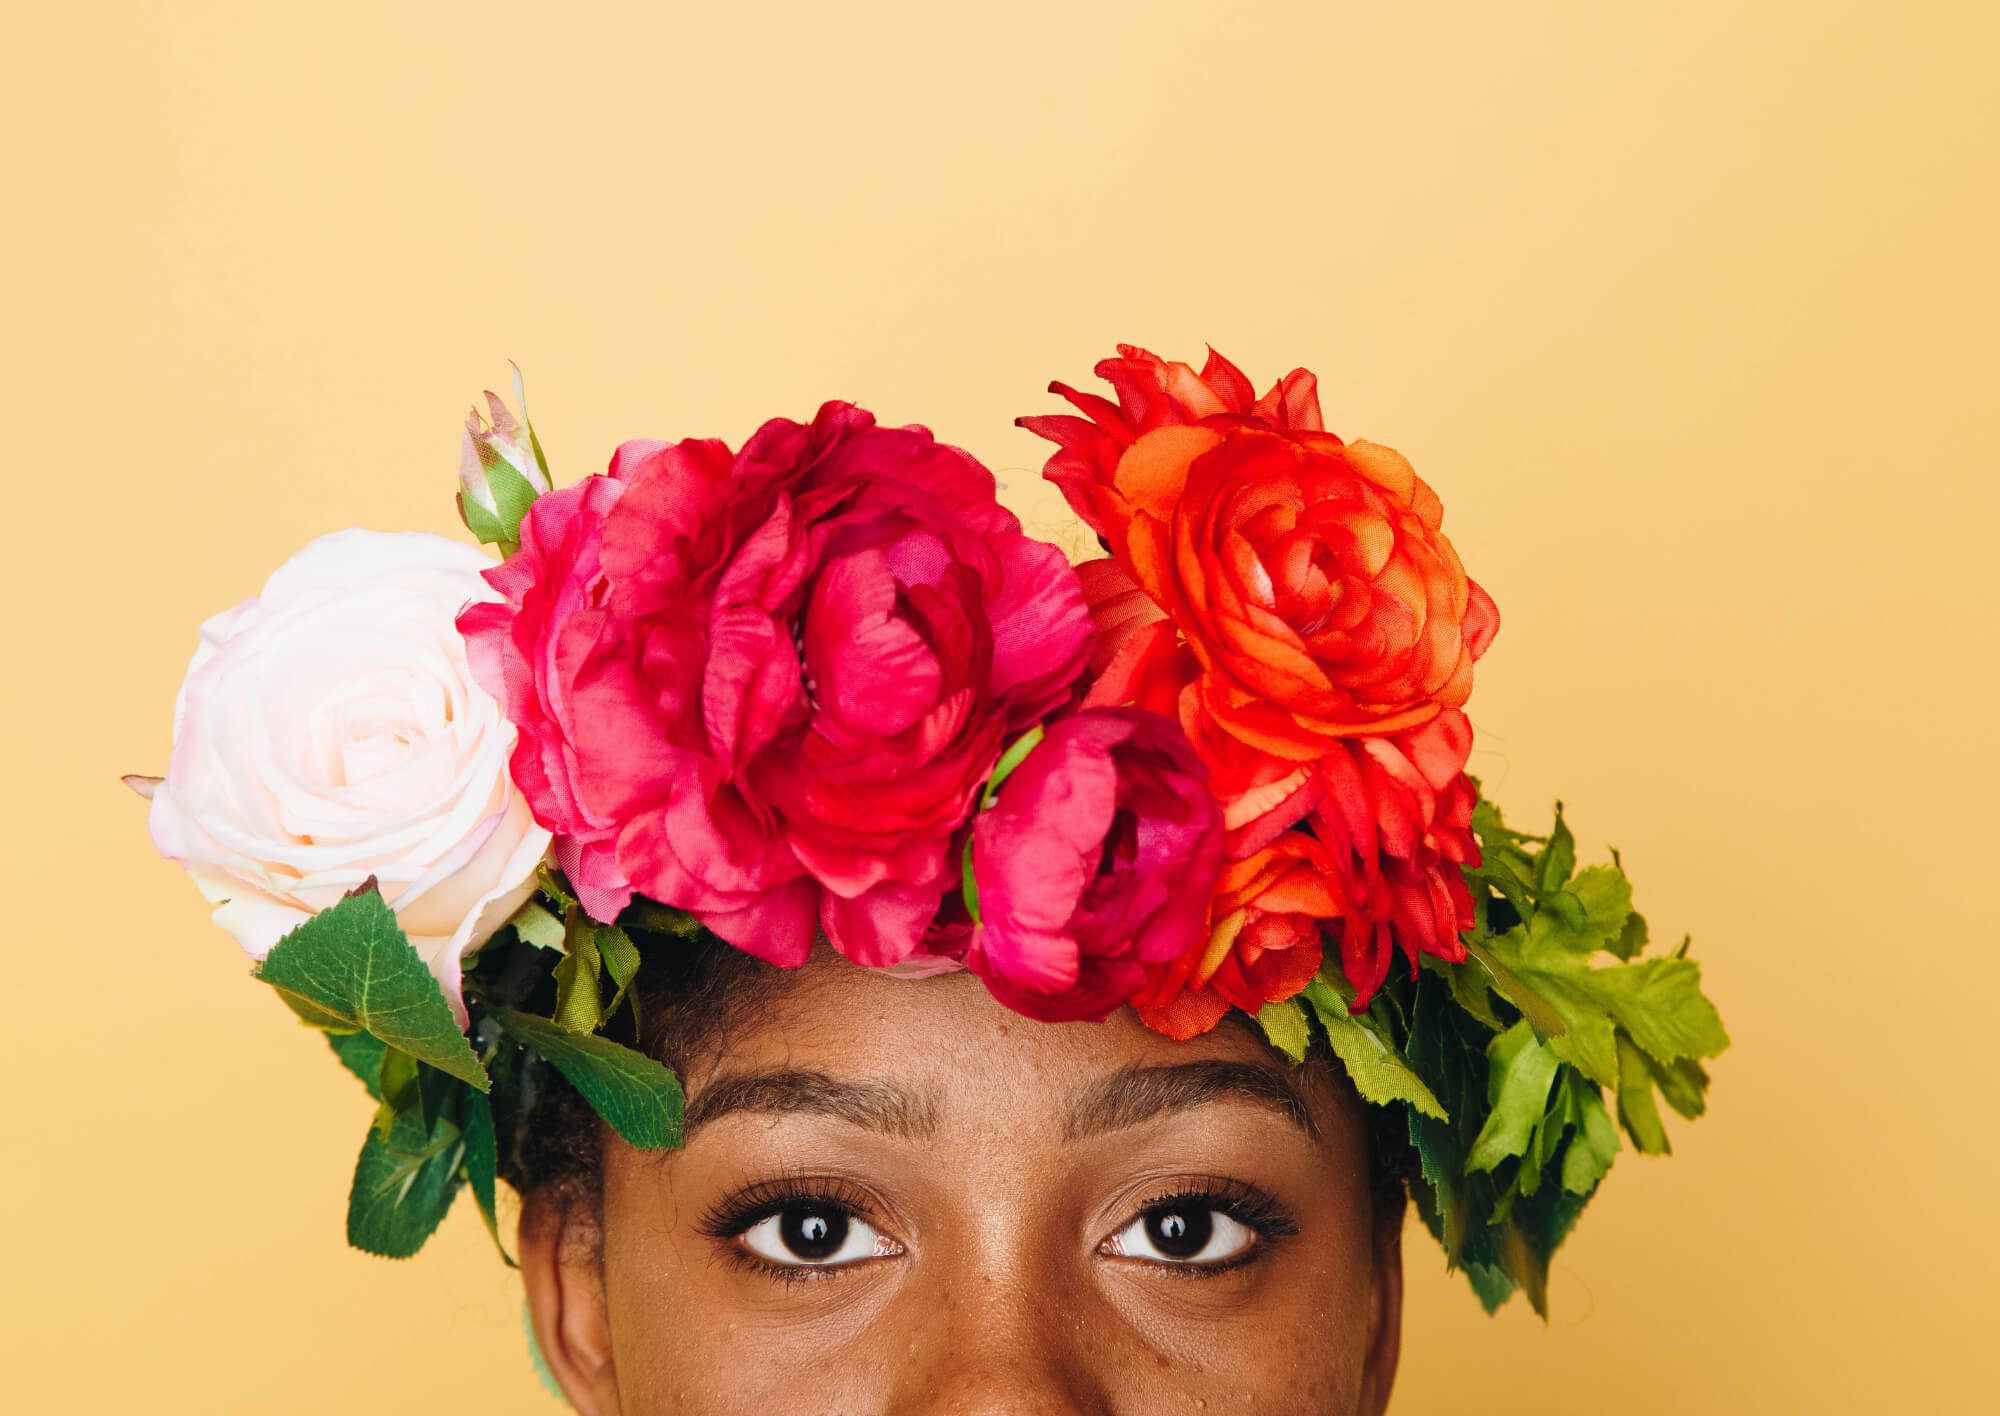 Young woman wearing a flower crown